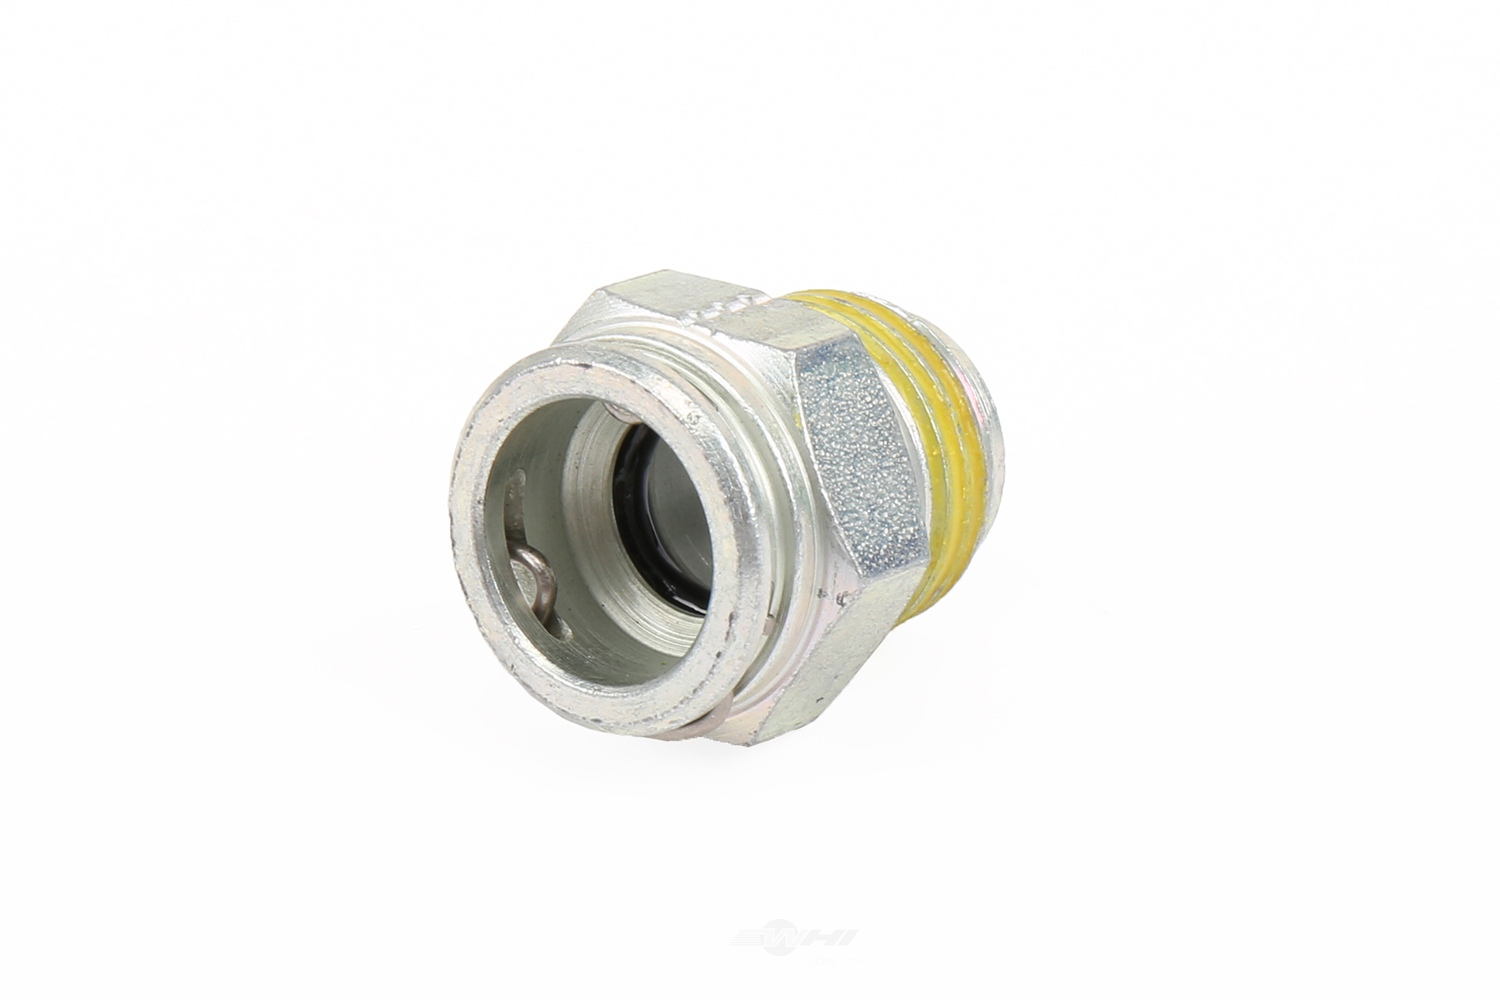 ACDELCO GM ORIGINAL EQUIPMENT - Automatic Transmission Oil Cooler End Fitting - DCB 19130039